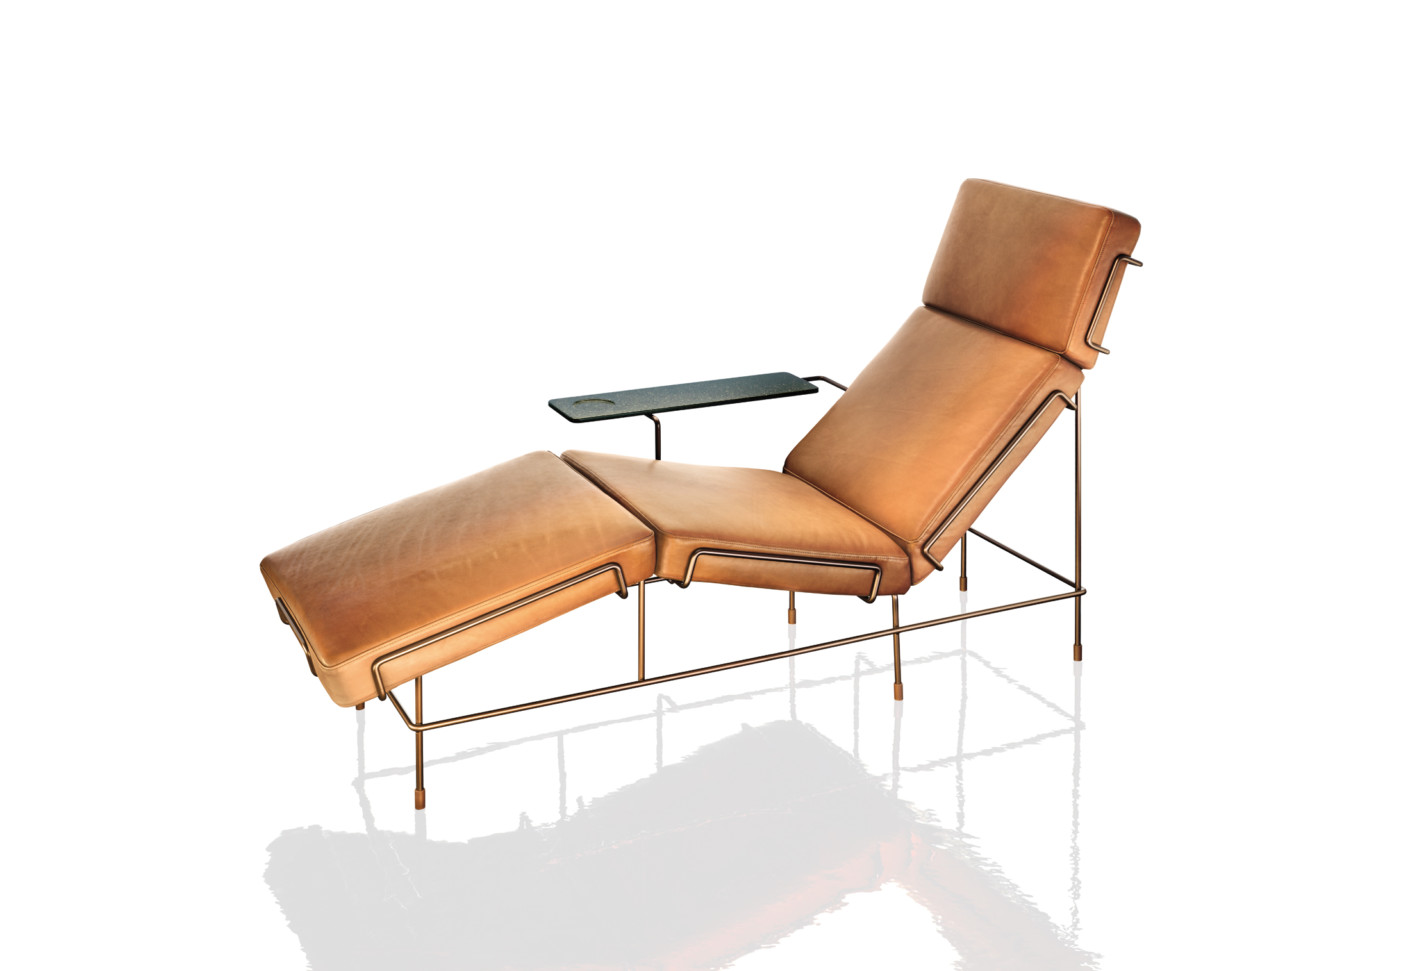 Chaiselongue Schlaffunktion Traffic Chaise Longue By Magis | Stylepark